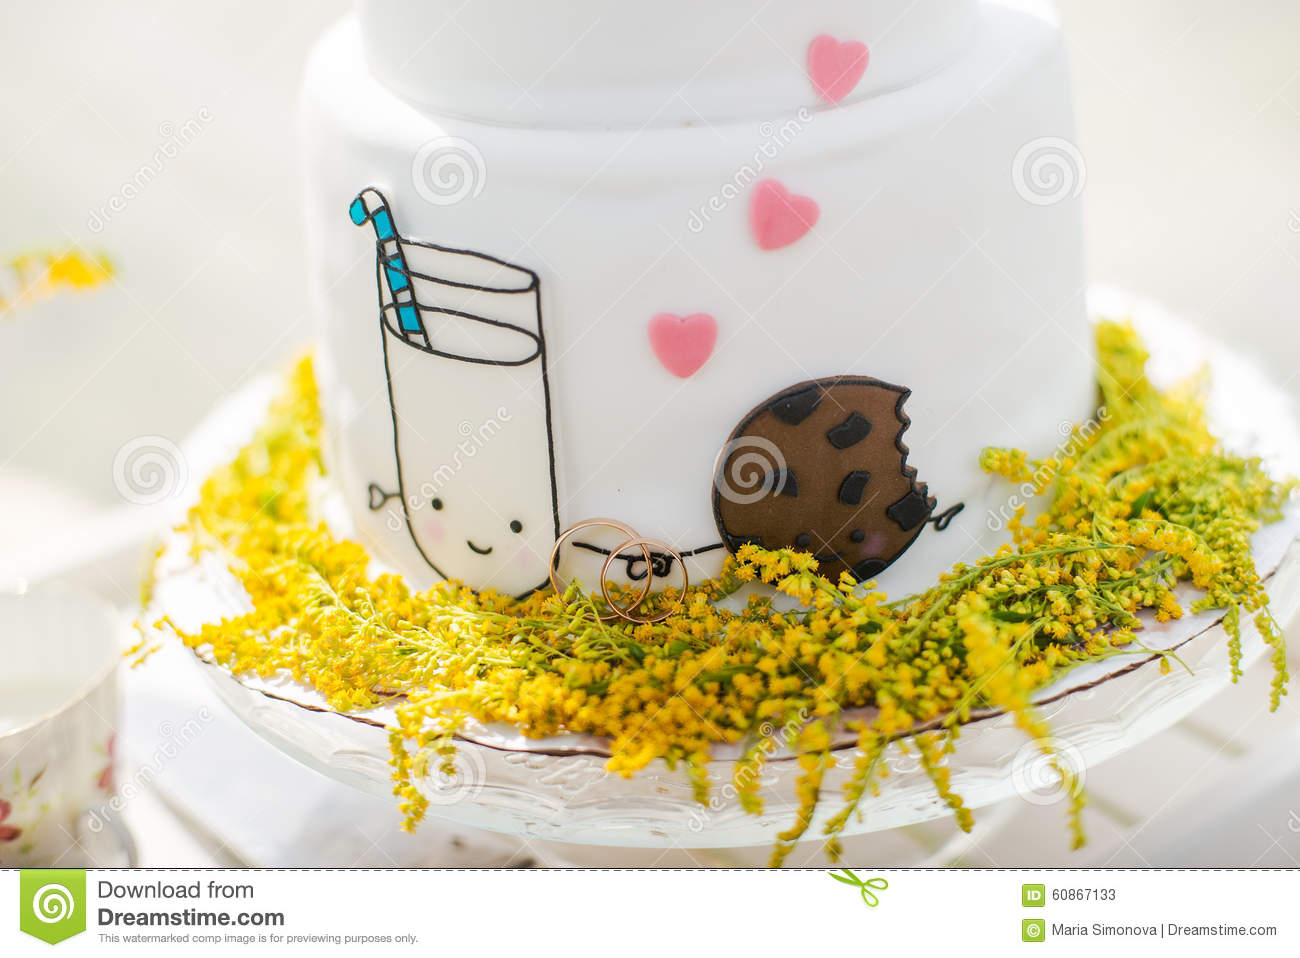 White Wedding Cake With Gold Rings Stock Image - Image of dance ...